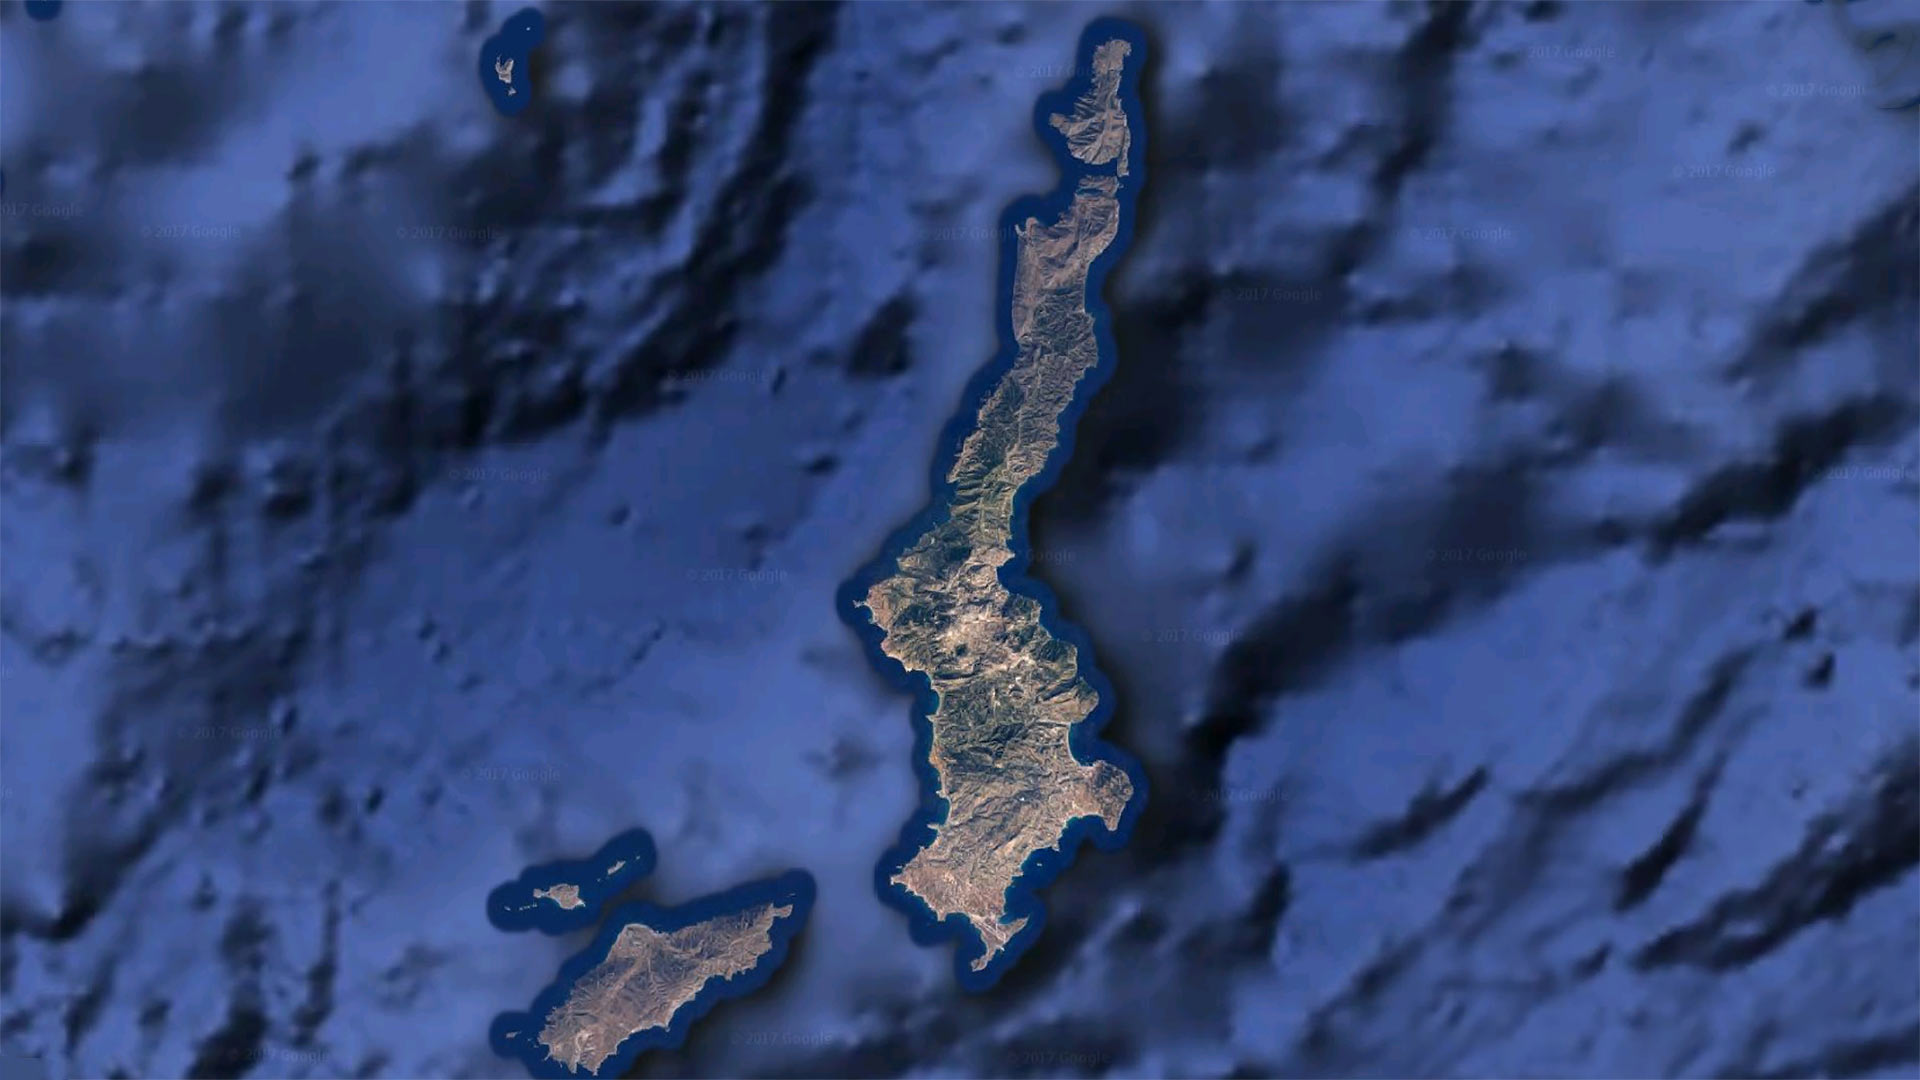 images/slider/karpathos-map.jpg